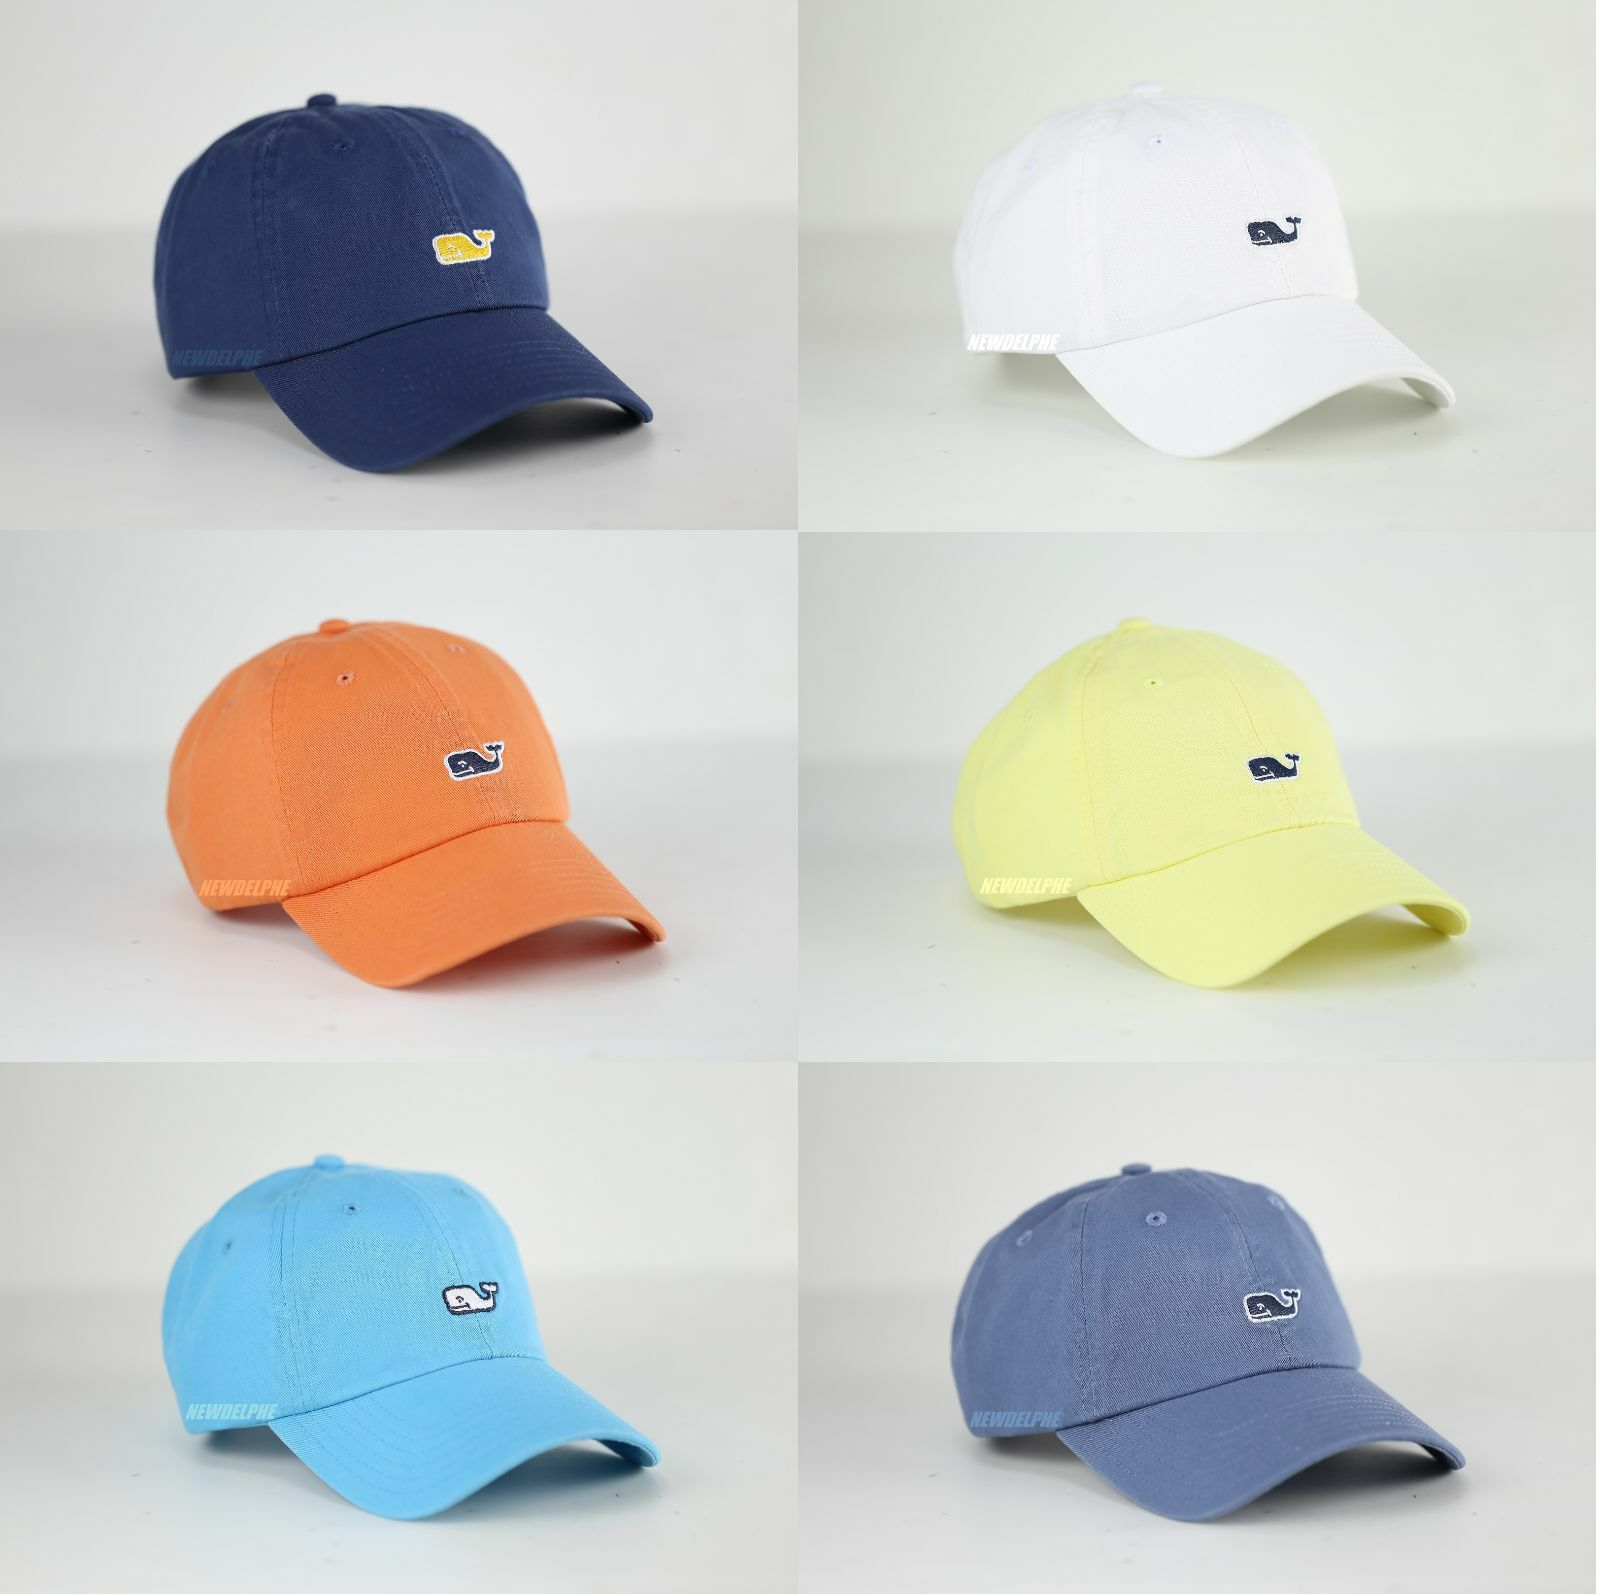 cbc19b8131332 Vineyard Vines Whale Logo Baseball Hat Golf Cap Cabana Orange Navy for sale  online